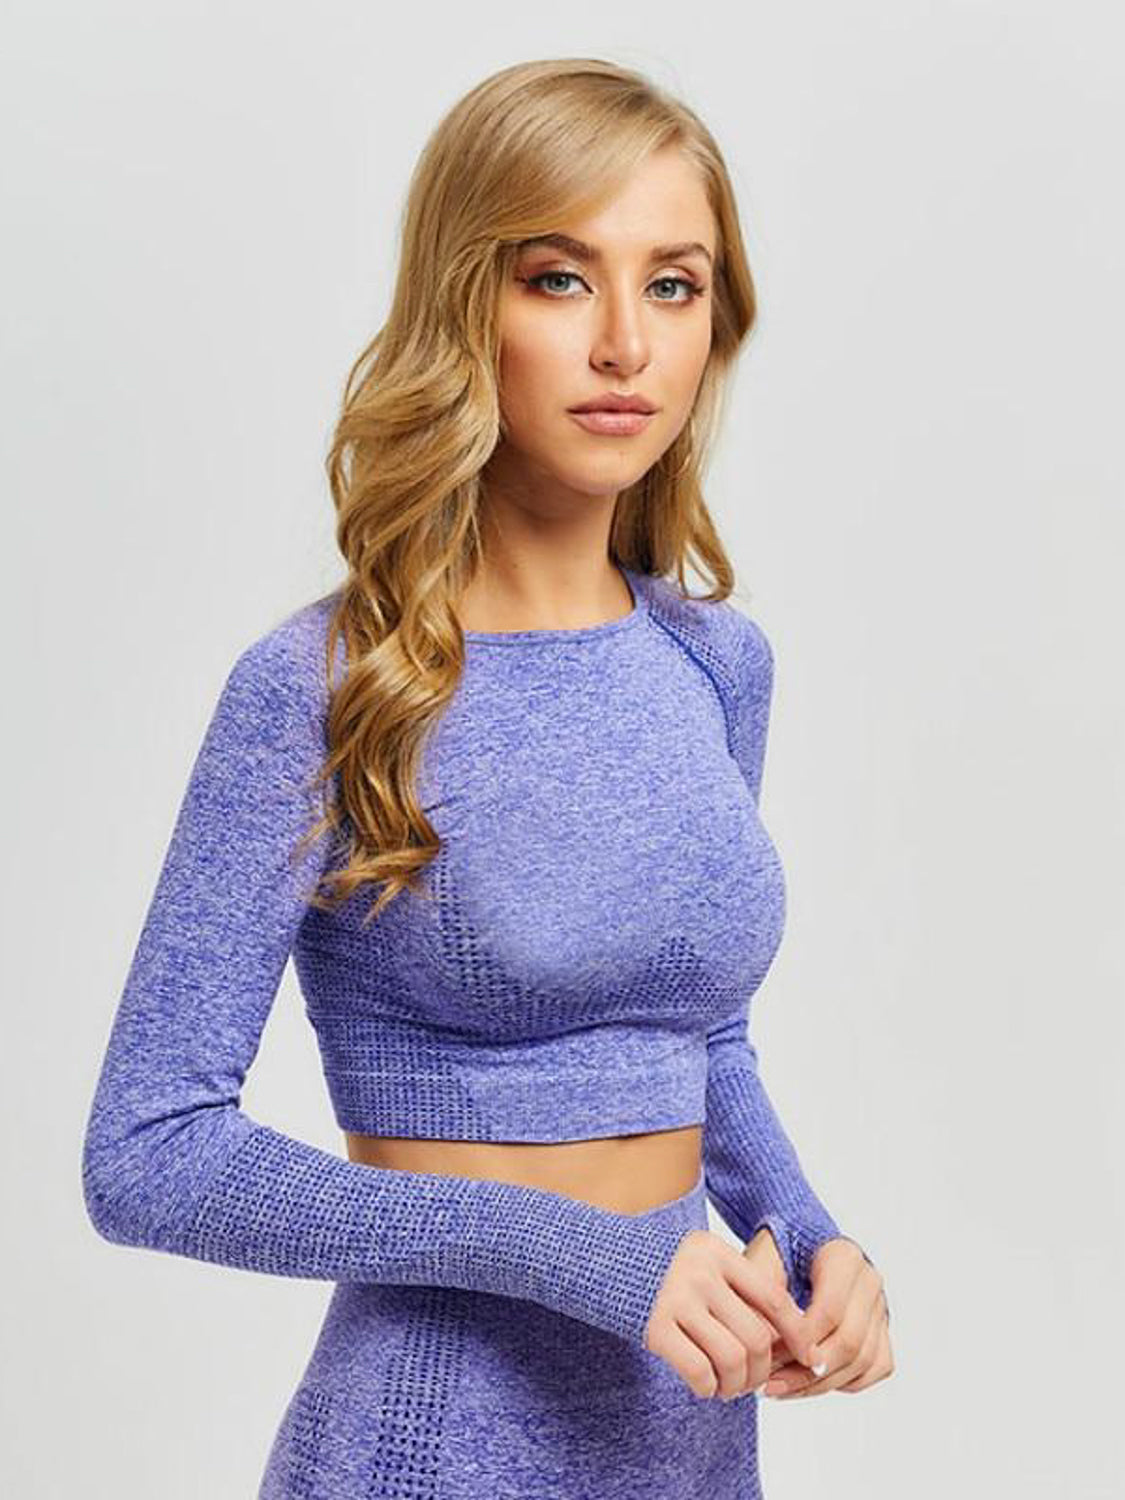 MOVI Sculpt+ Flex Sleeved Crop in Indigo